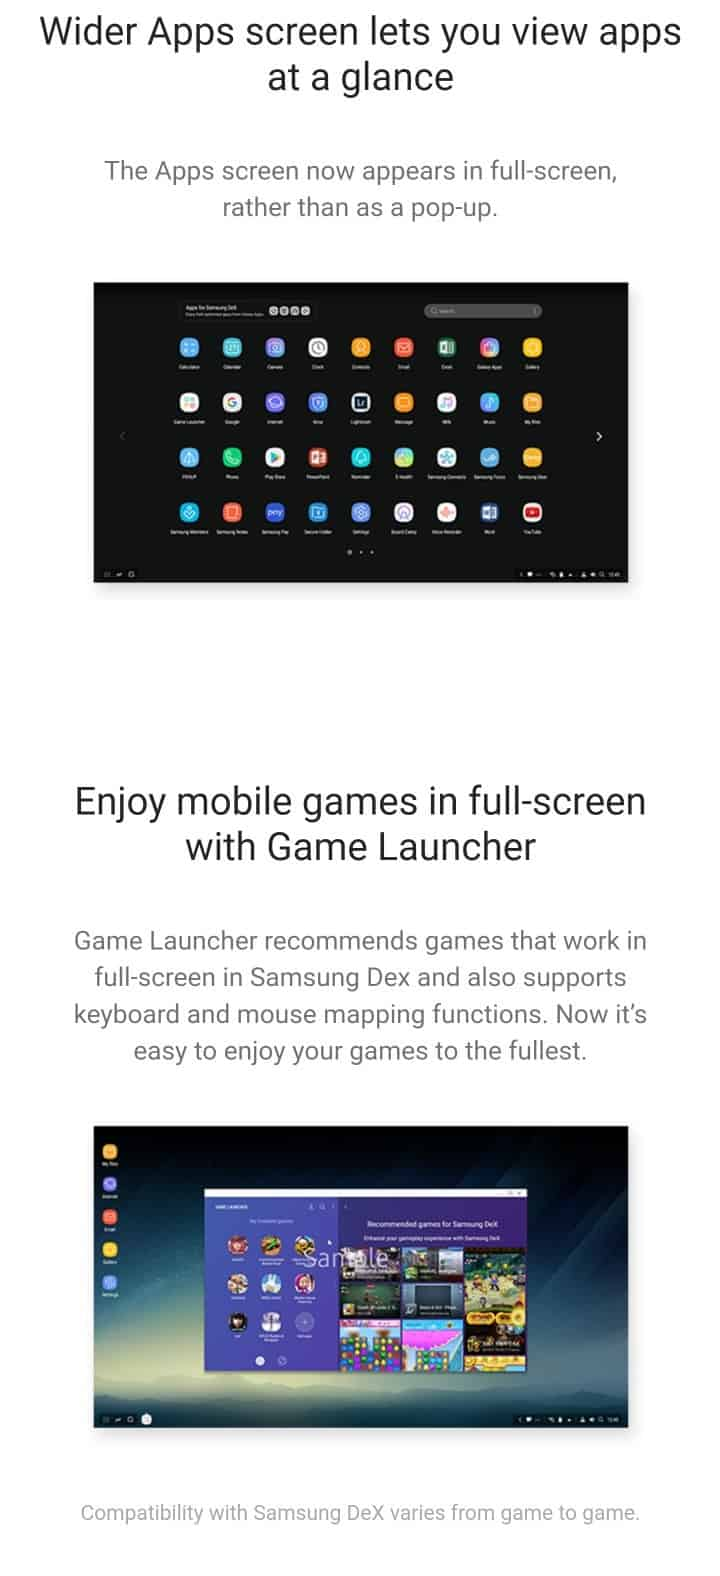 samsung experience 9 infographic 21